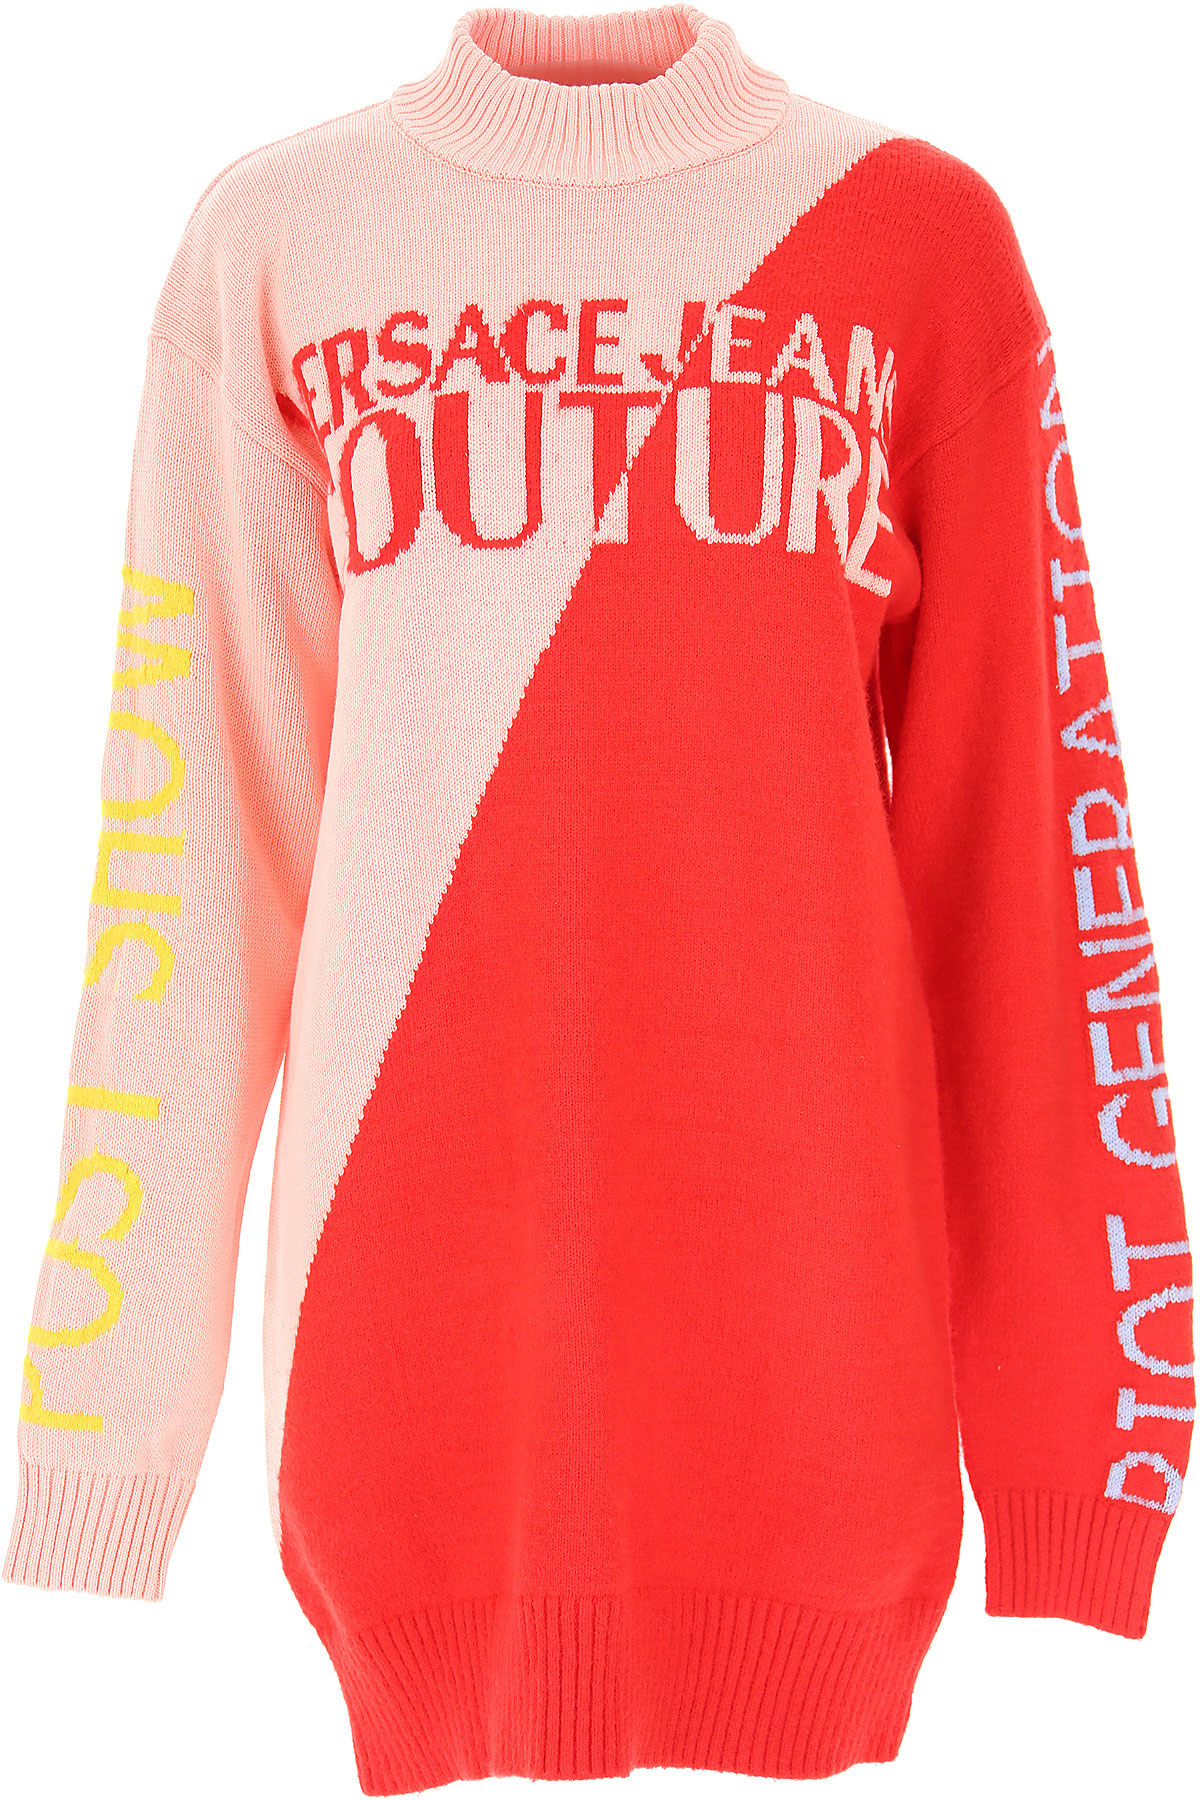 Versace Jeans Couture Dress for Women, Evening Cocktail Party On Sale, Red, Cotton, 2019, 2